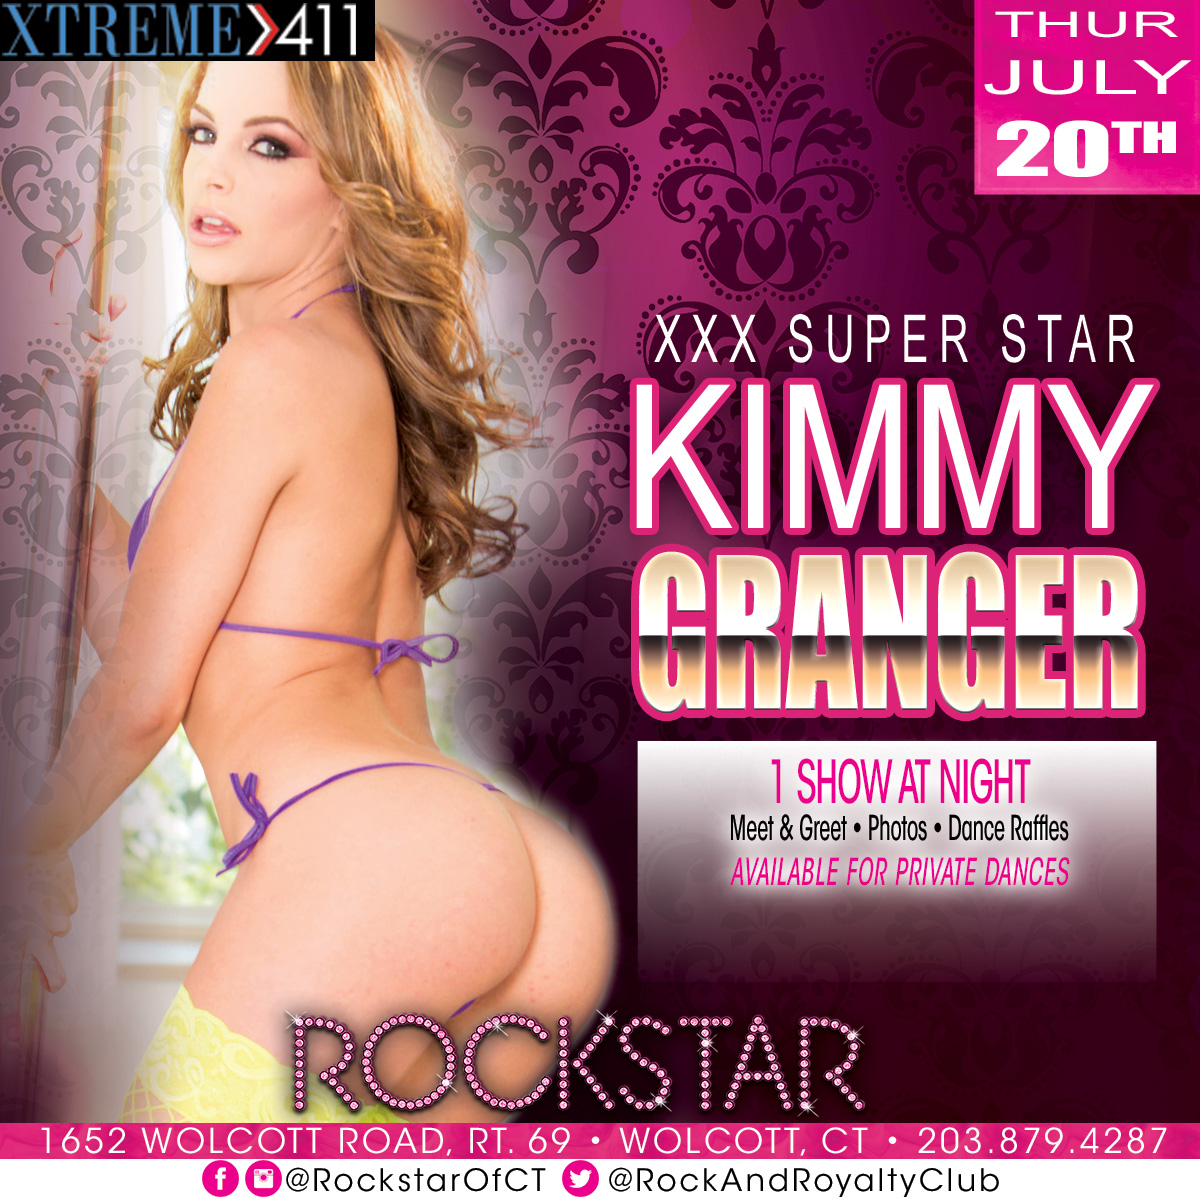 Porn Star Kimmy Granger | Rockstar Strip Club Connecticut